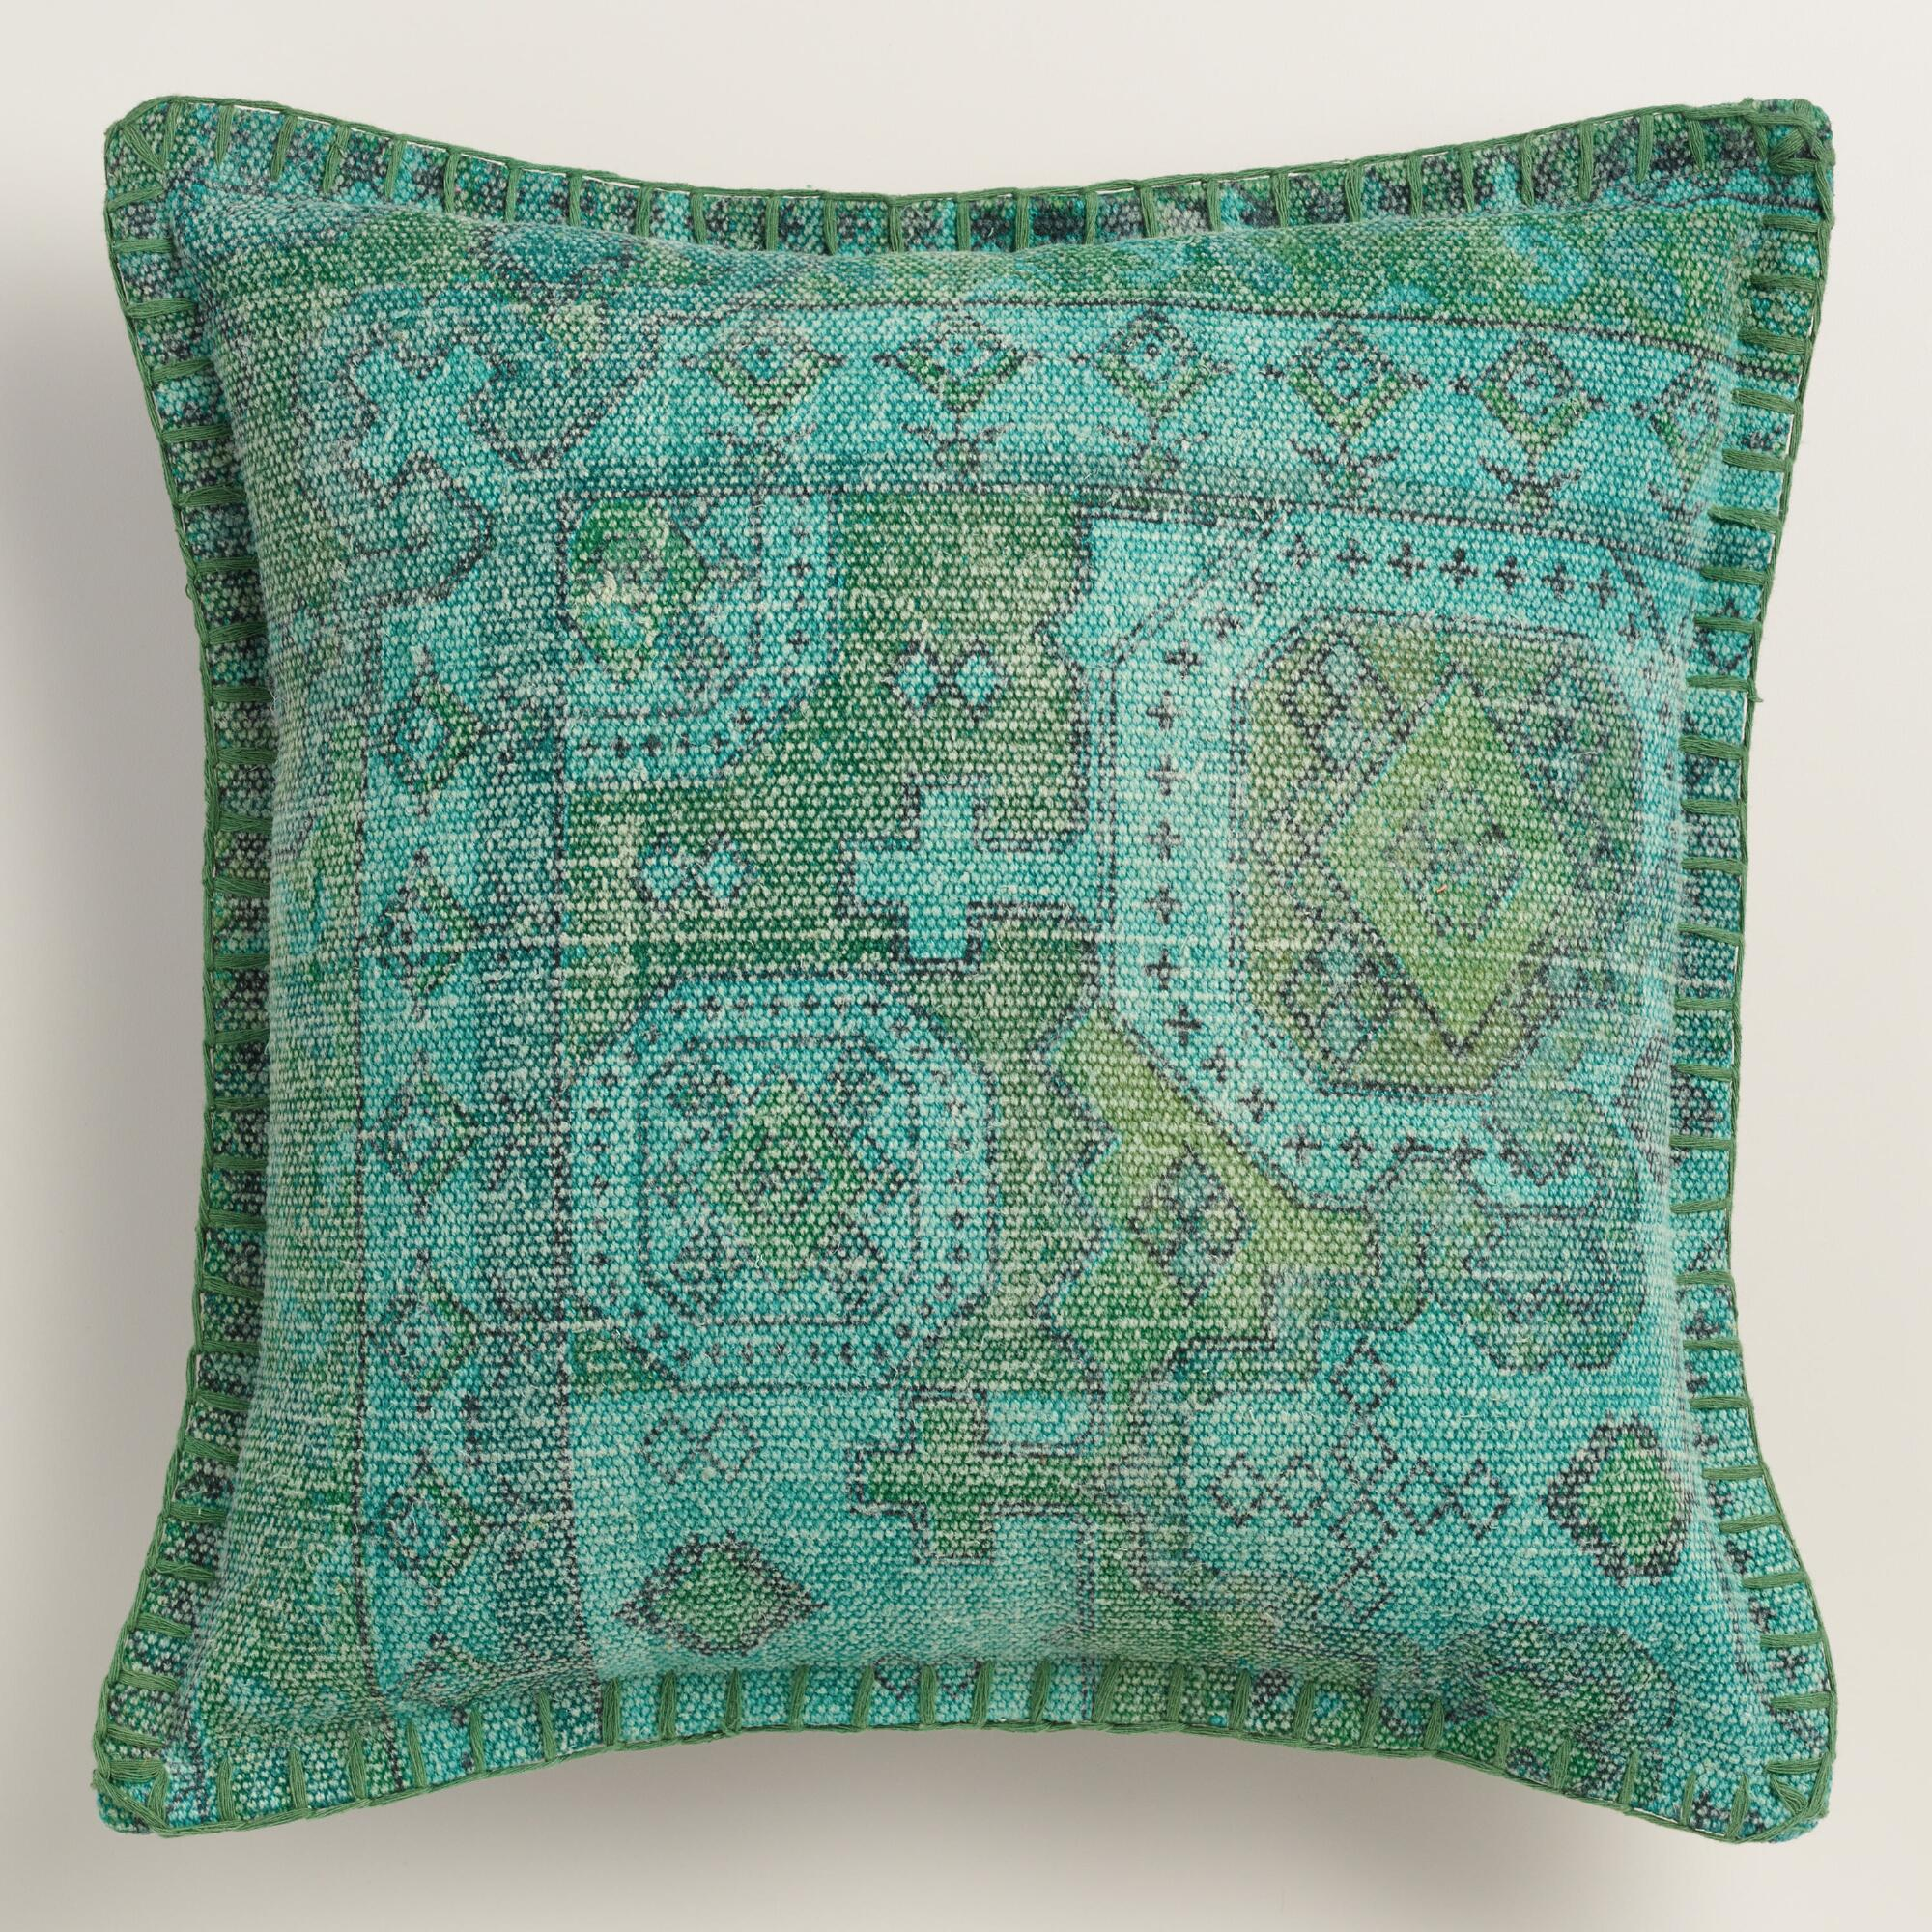 Teal Overdyed Cotton Throw Pillow World Market